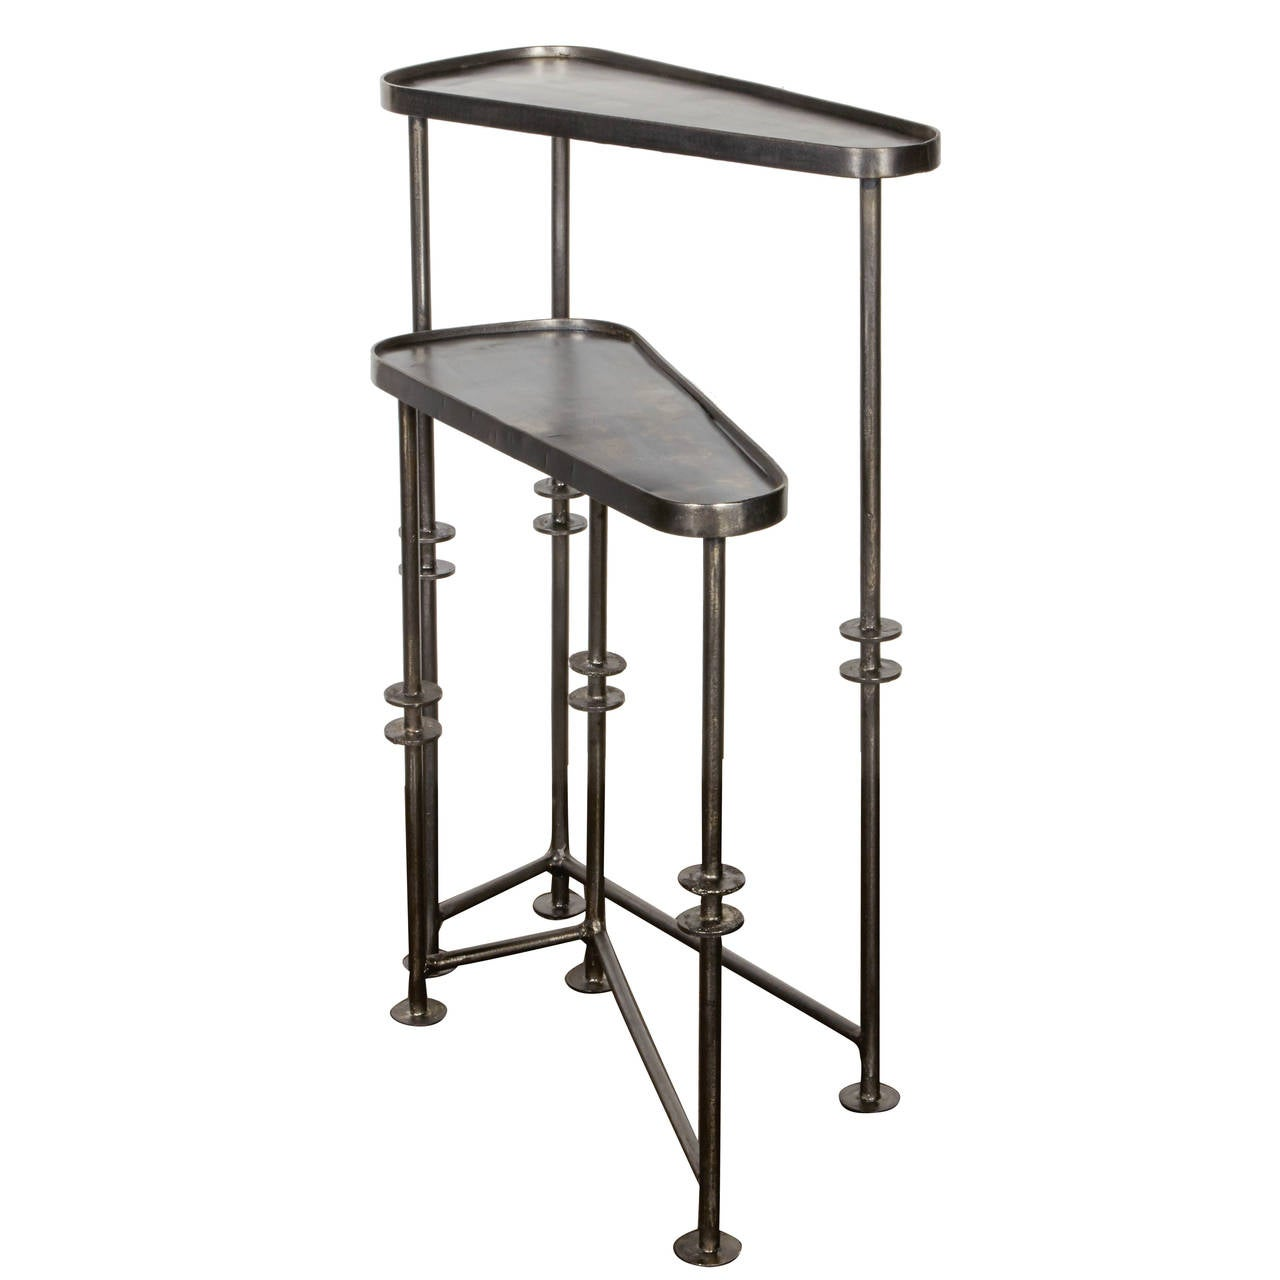 Industrial Nesting Tables And Side Tables In Burnished Metal At . Full resolution‎  image, nominally Width 1280 Height 1280 pixels, image with #37302A.